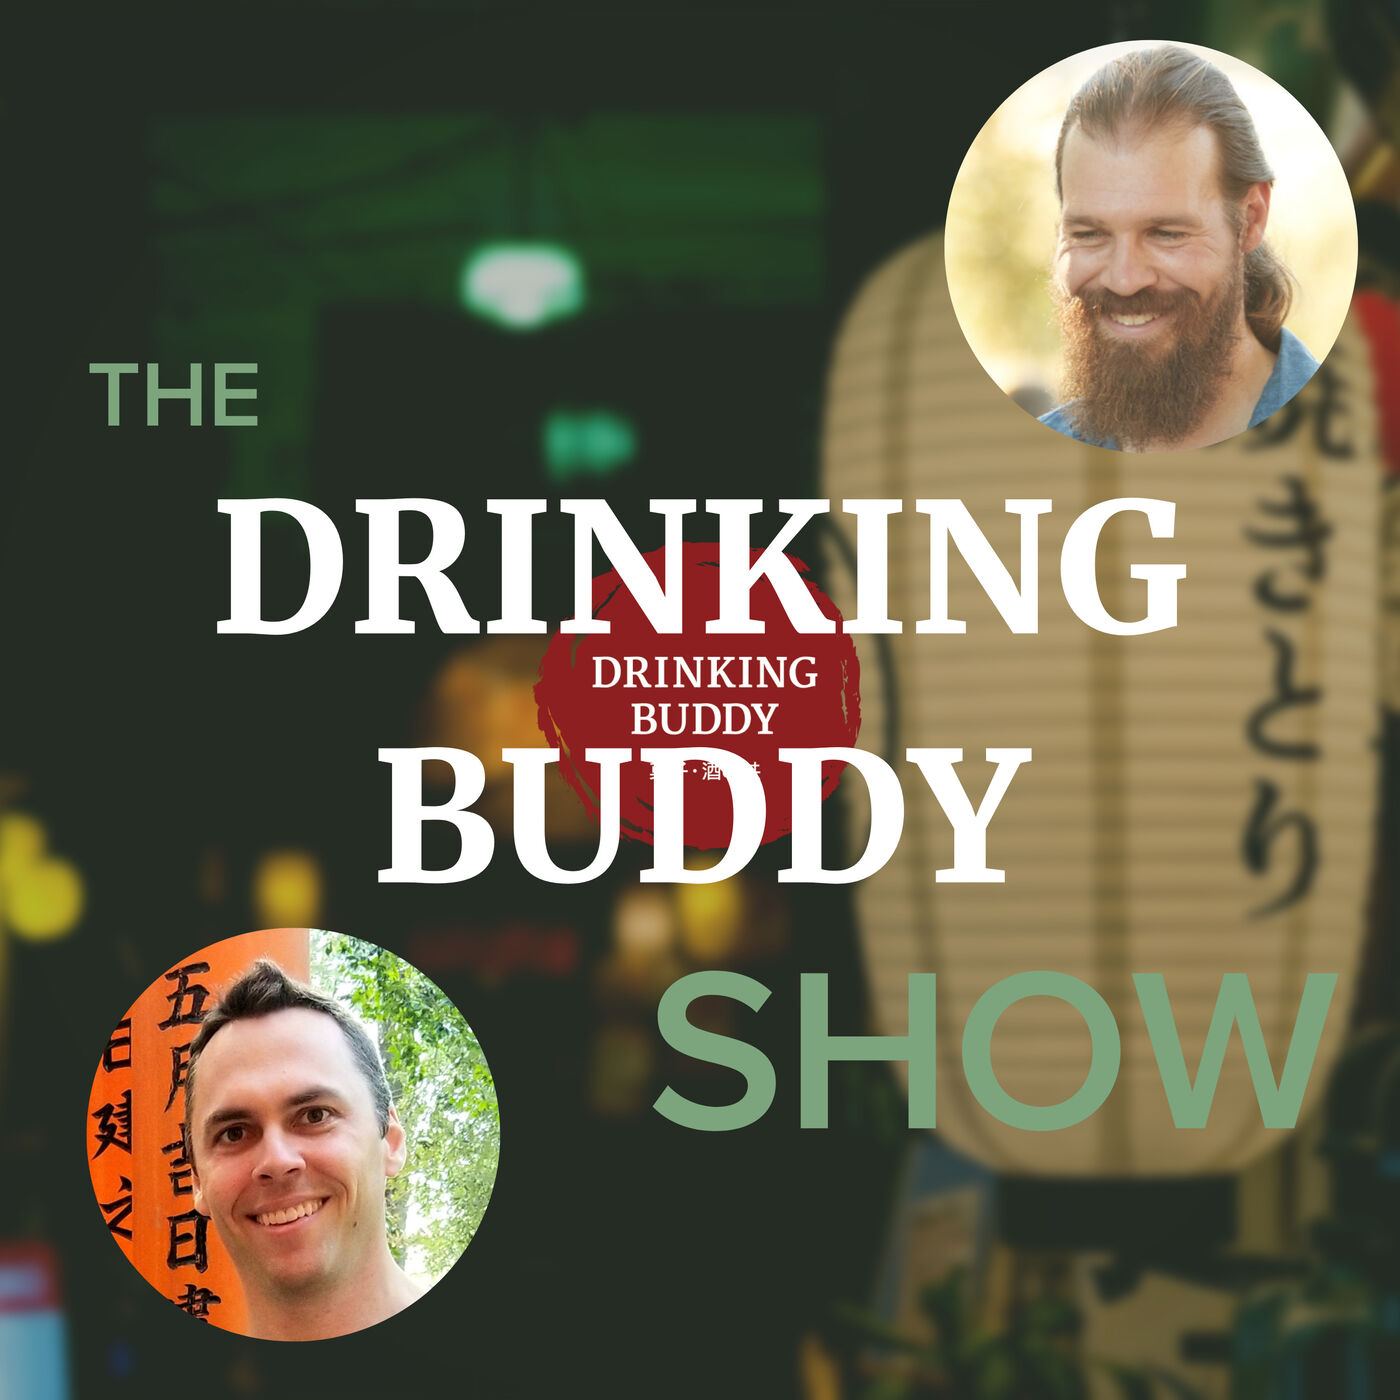 The Cleveland Ohio Craft Beer Scene with Jon Passow, Co-Host of A Starter and A Chaser Podcast